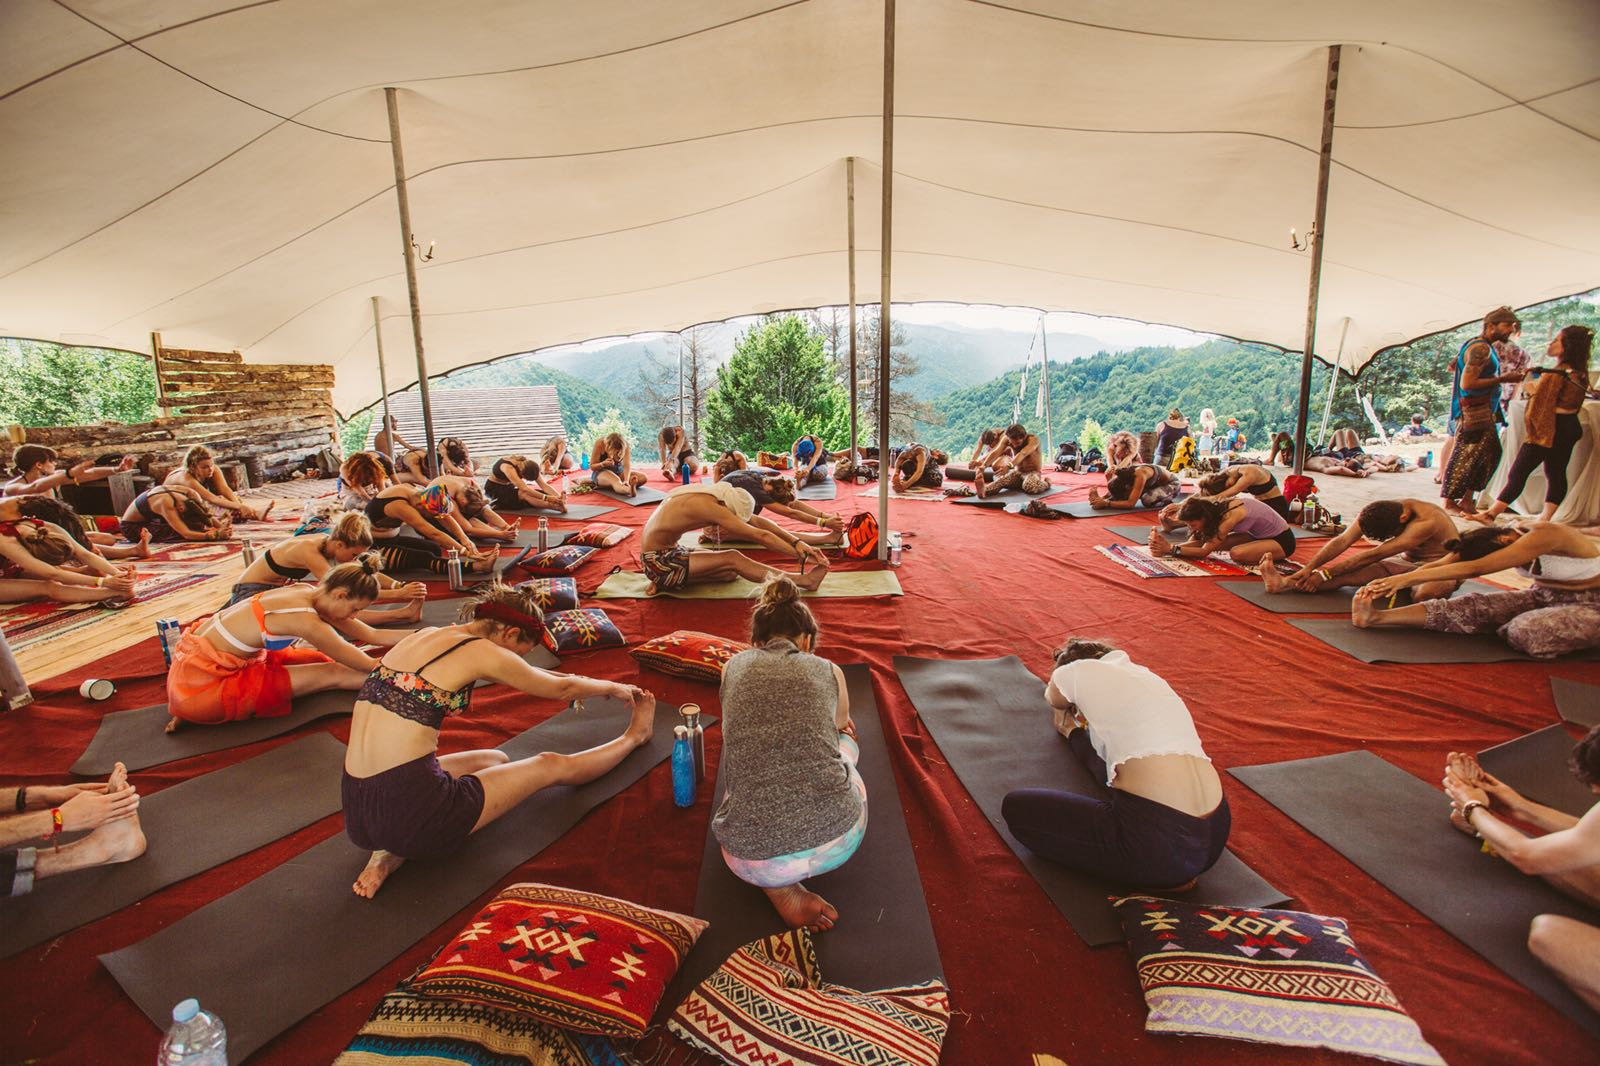 The festival offers a smorgasbord of activity, including workshops, yoga classes and more.